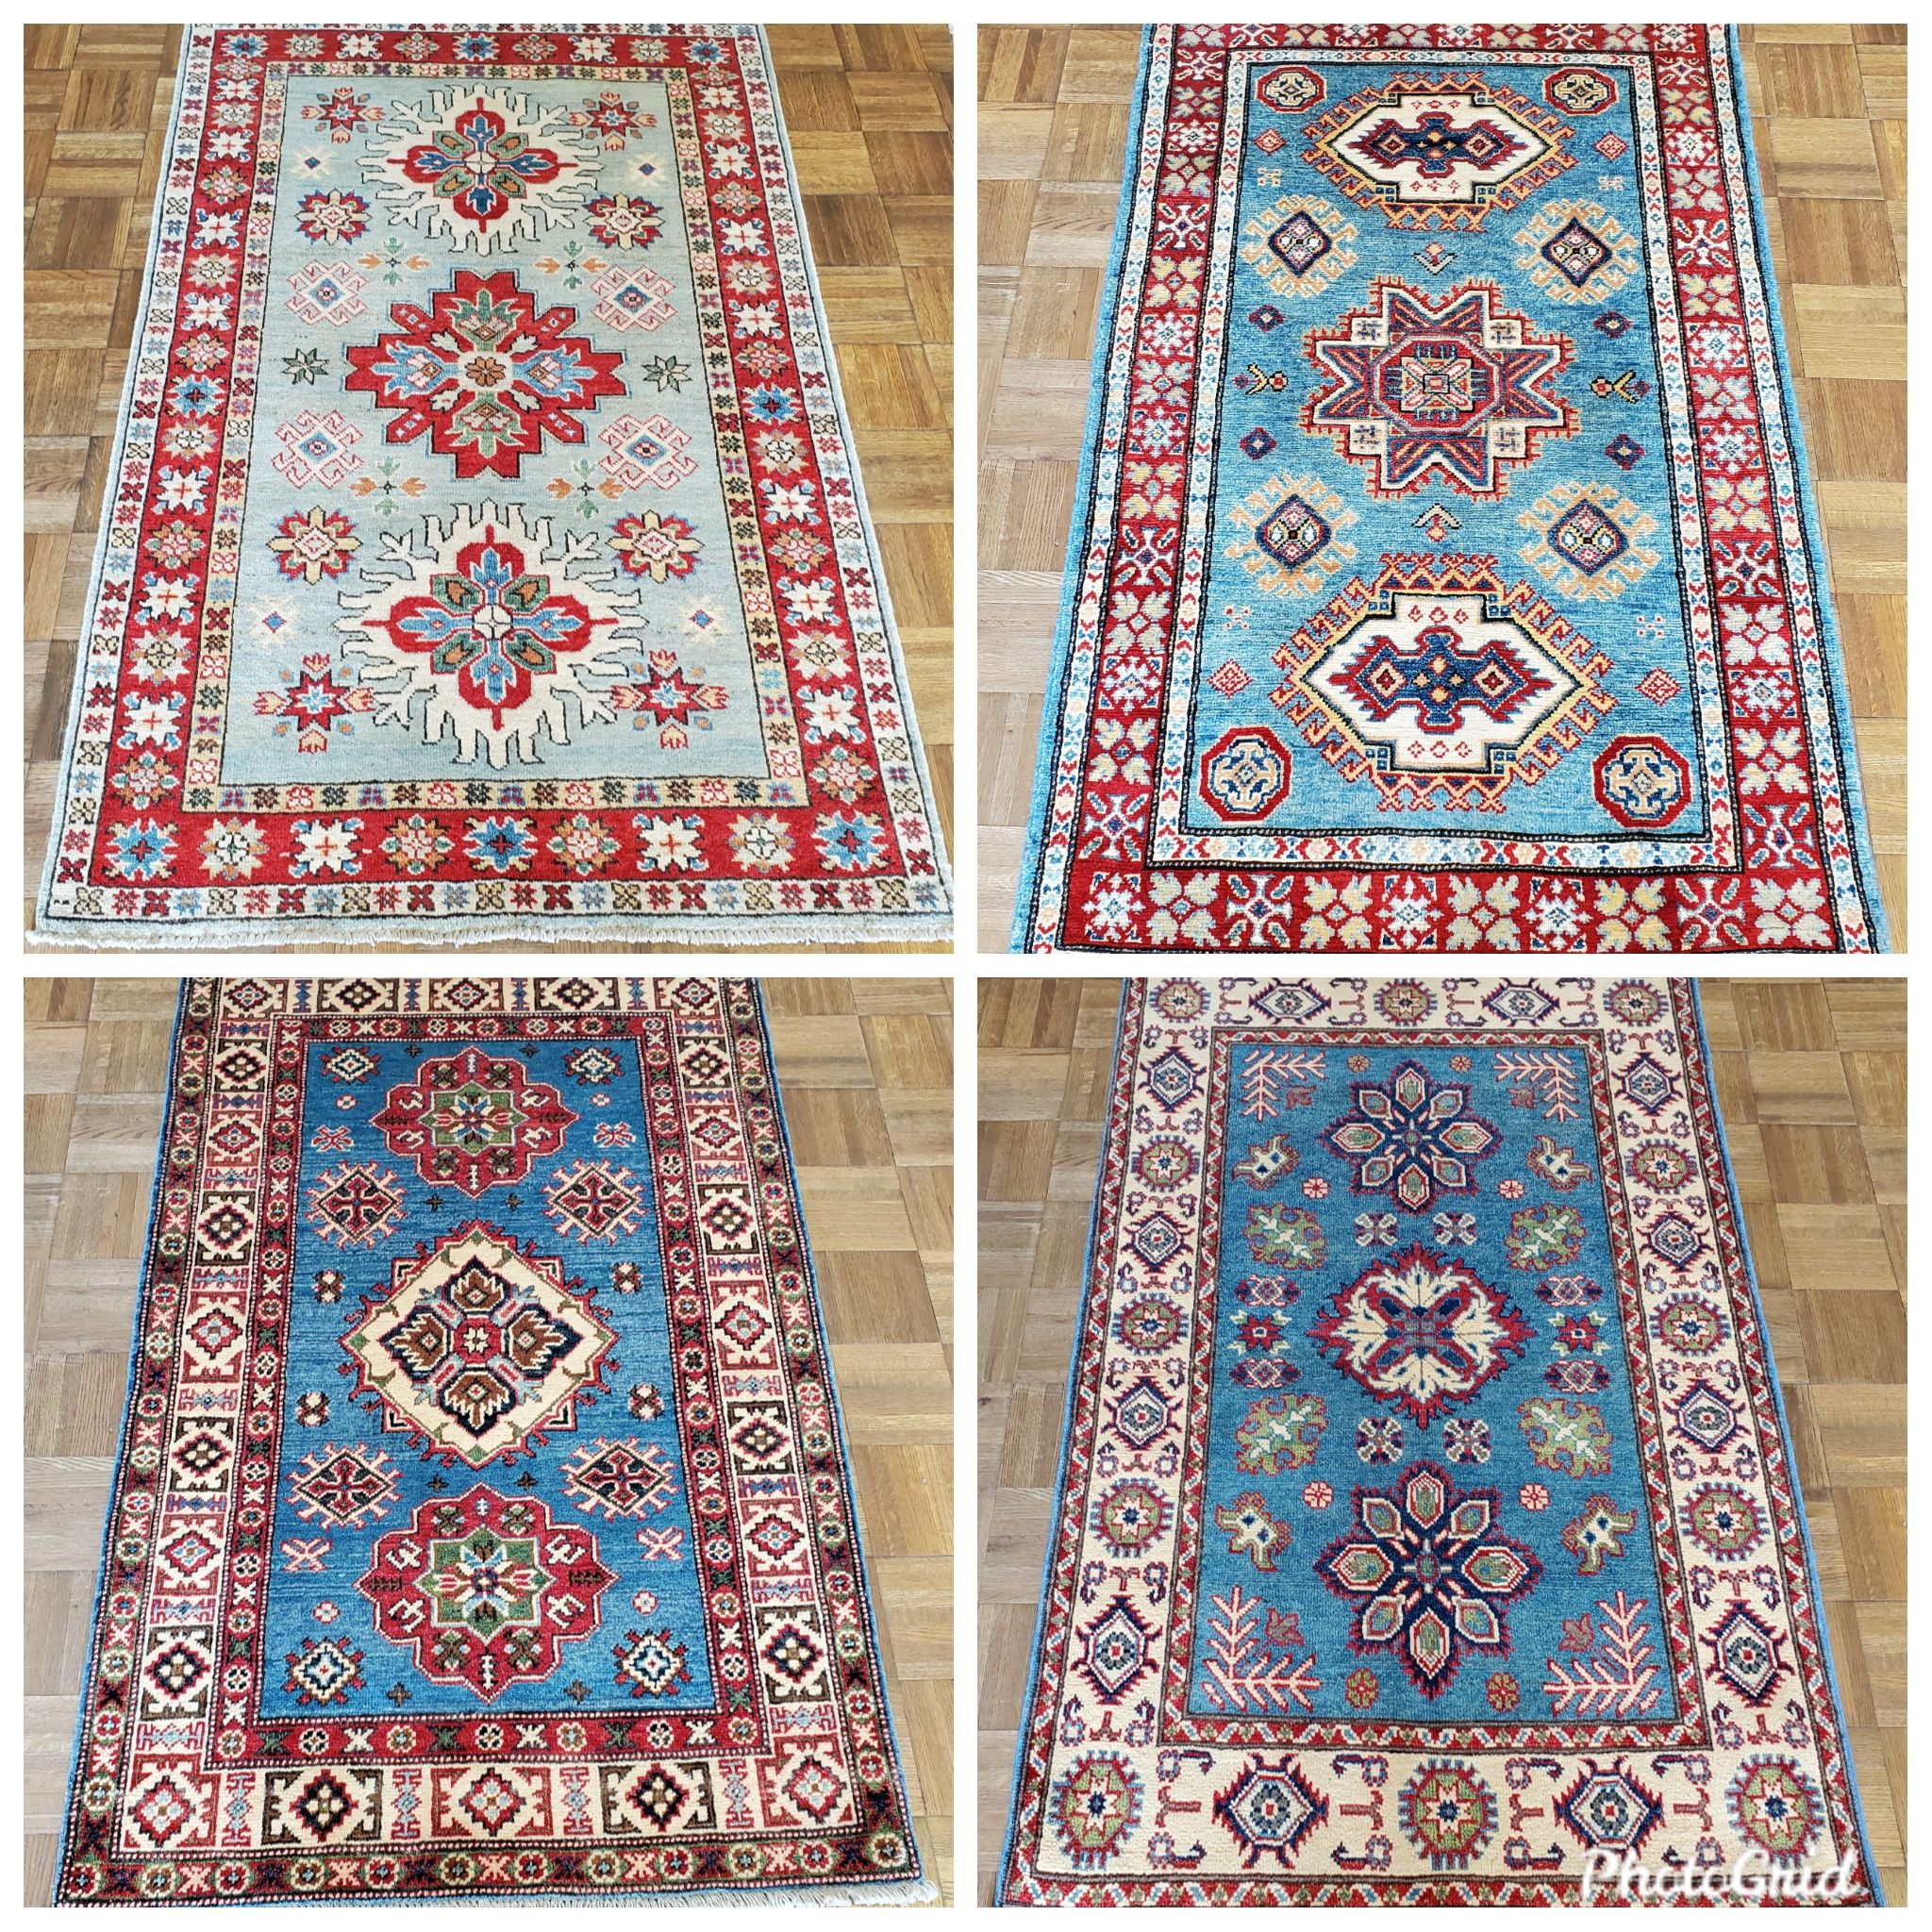 Vintage Kazak 3x5 pieces!  all-natural, directly imported! $395 reduced from $1190! Grab them!  Call 205-870-4444 or drop by if it's for you!  Please share! 🙋♀️  #nilipourorientalrugs #MayDayDeal #familybusiness #since1972 #fullservice #shoplocal #happycustomer #artyoucantreadon #orientalrug #rug #arearug #naturalfibers #wholesaleprices #directimporting #affordableluxury #functionalrug #practicalrug #appeal #qualityrug #investment #conversationpiece #Lifestyle #rugcleaning #orientalrugcleaning